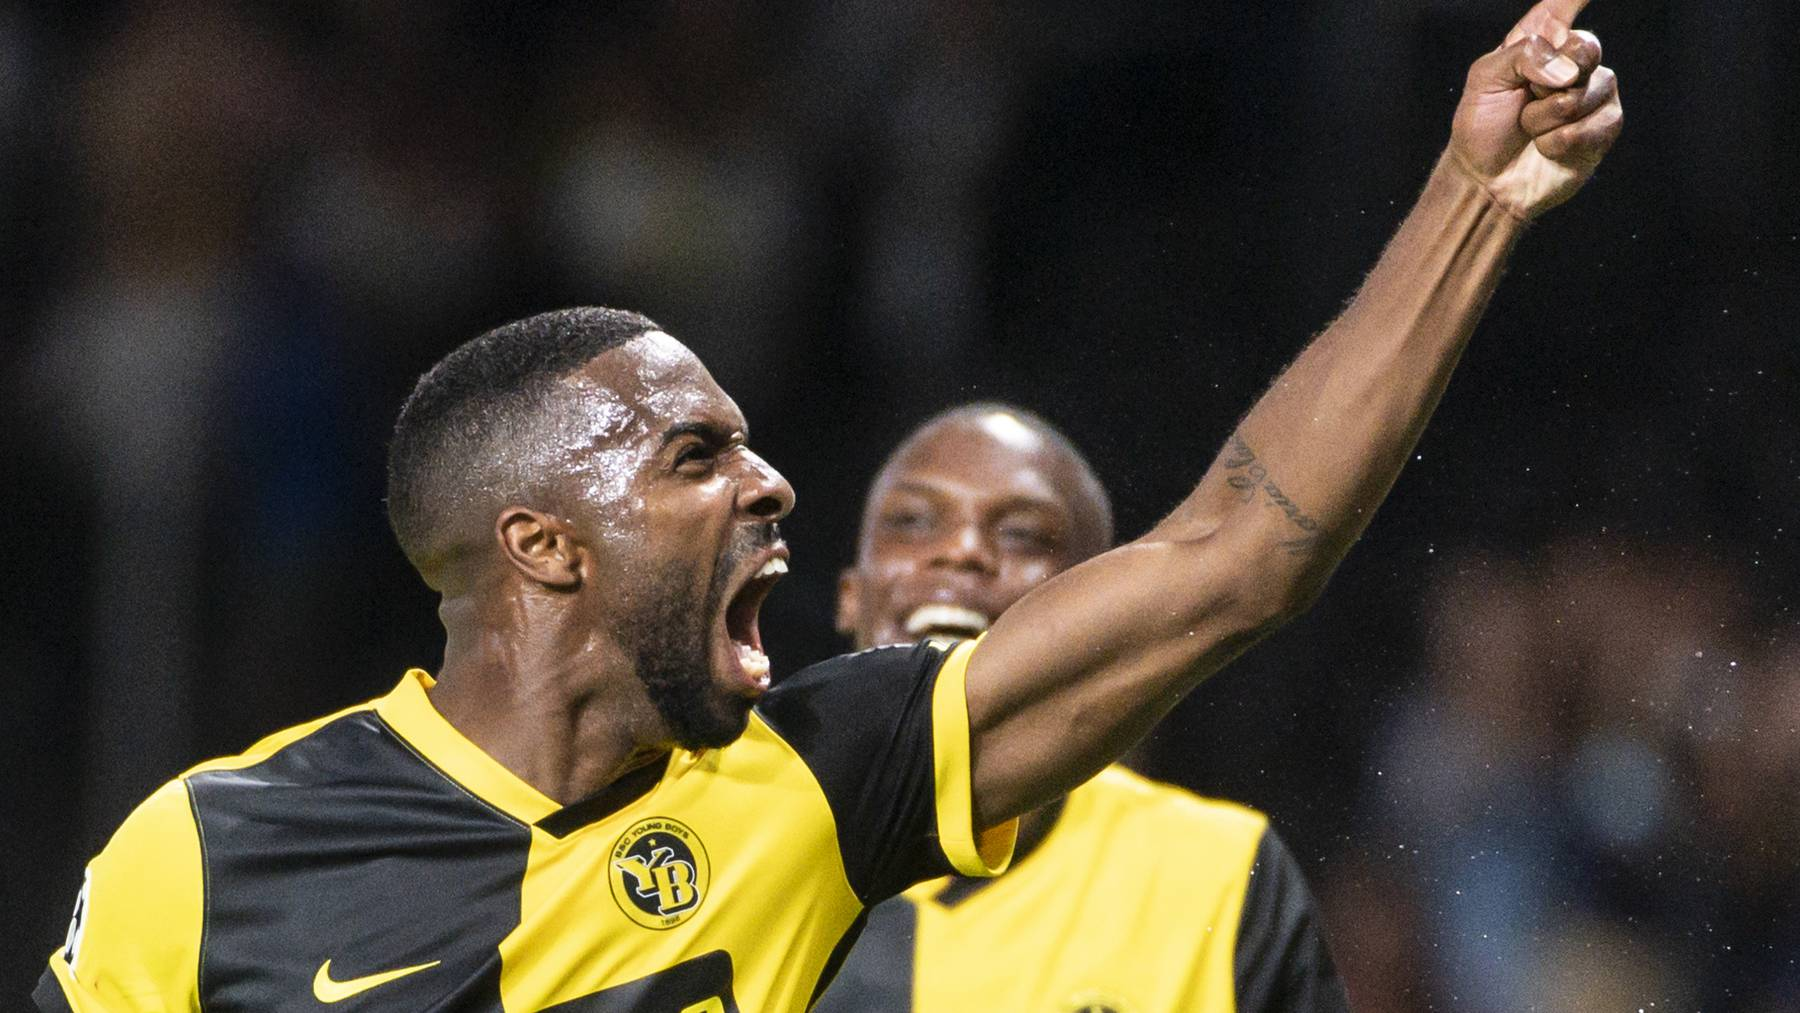 Young Boys' Ulisses Garcia celebrates after scoring to 3:1 during the UEFA Champions League Play-off first leg soccer match between BSC Young Boys and Ferencvaros TC, on Wednesday, August 18, 2021 at the Wankdorf stadium in Bern, Switzerland.